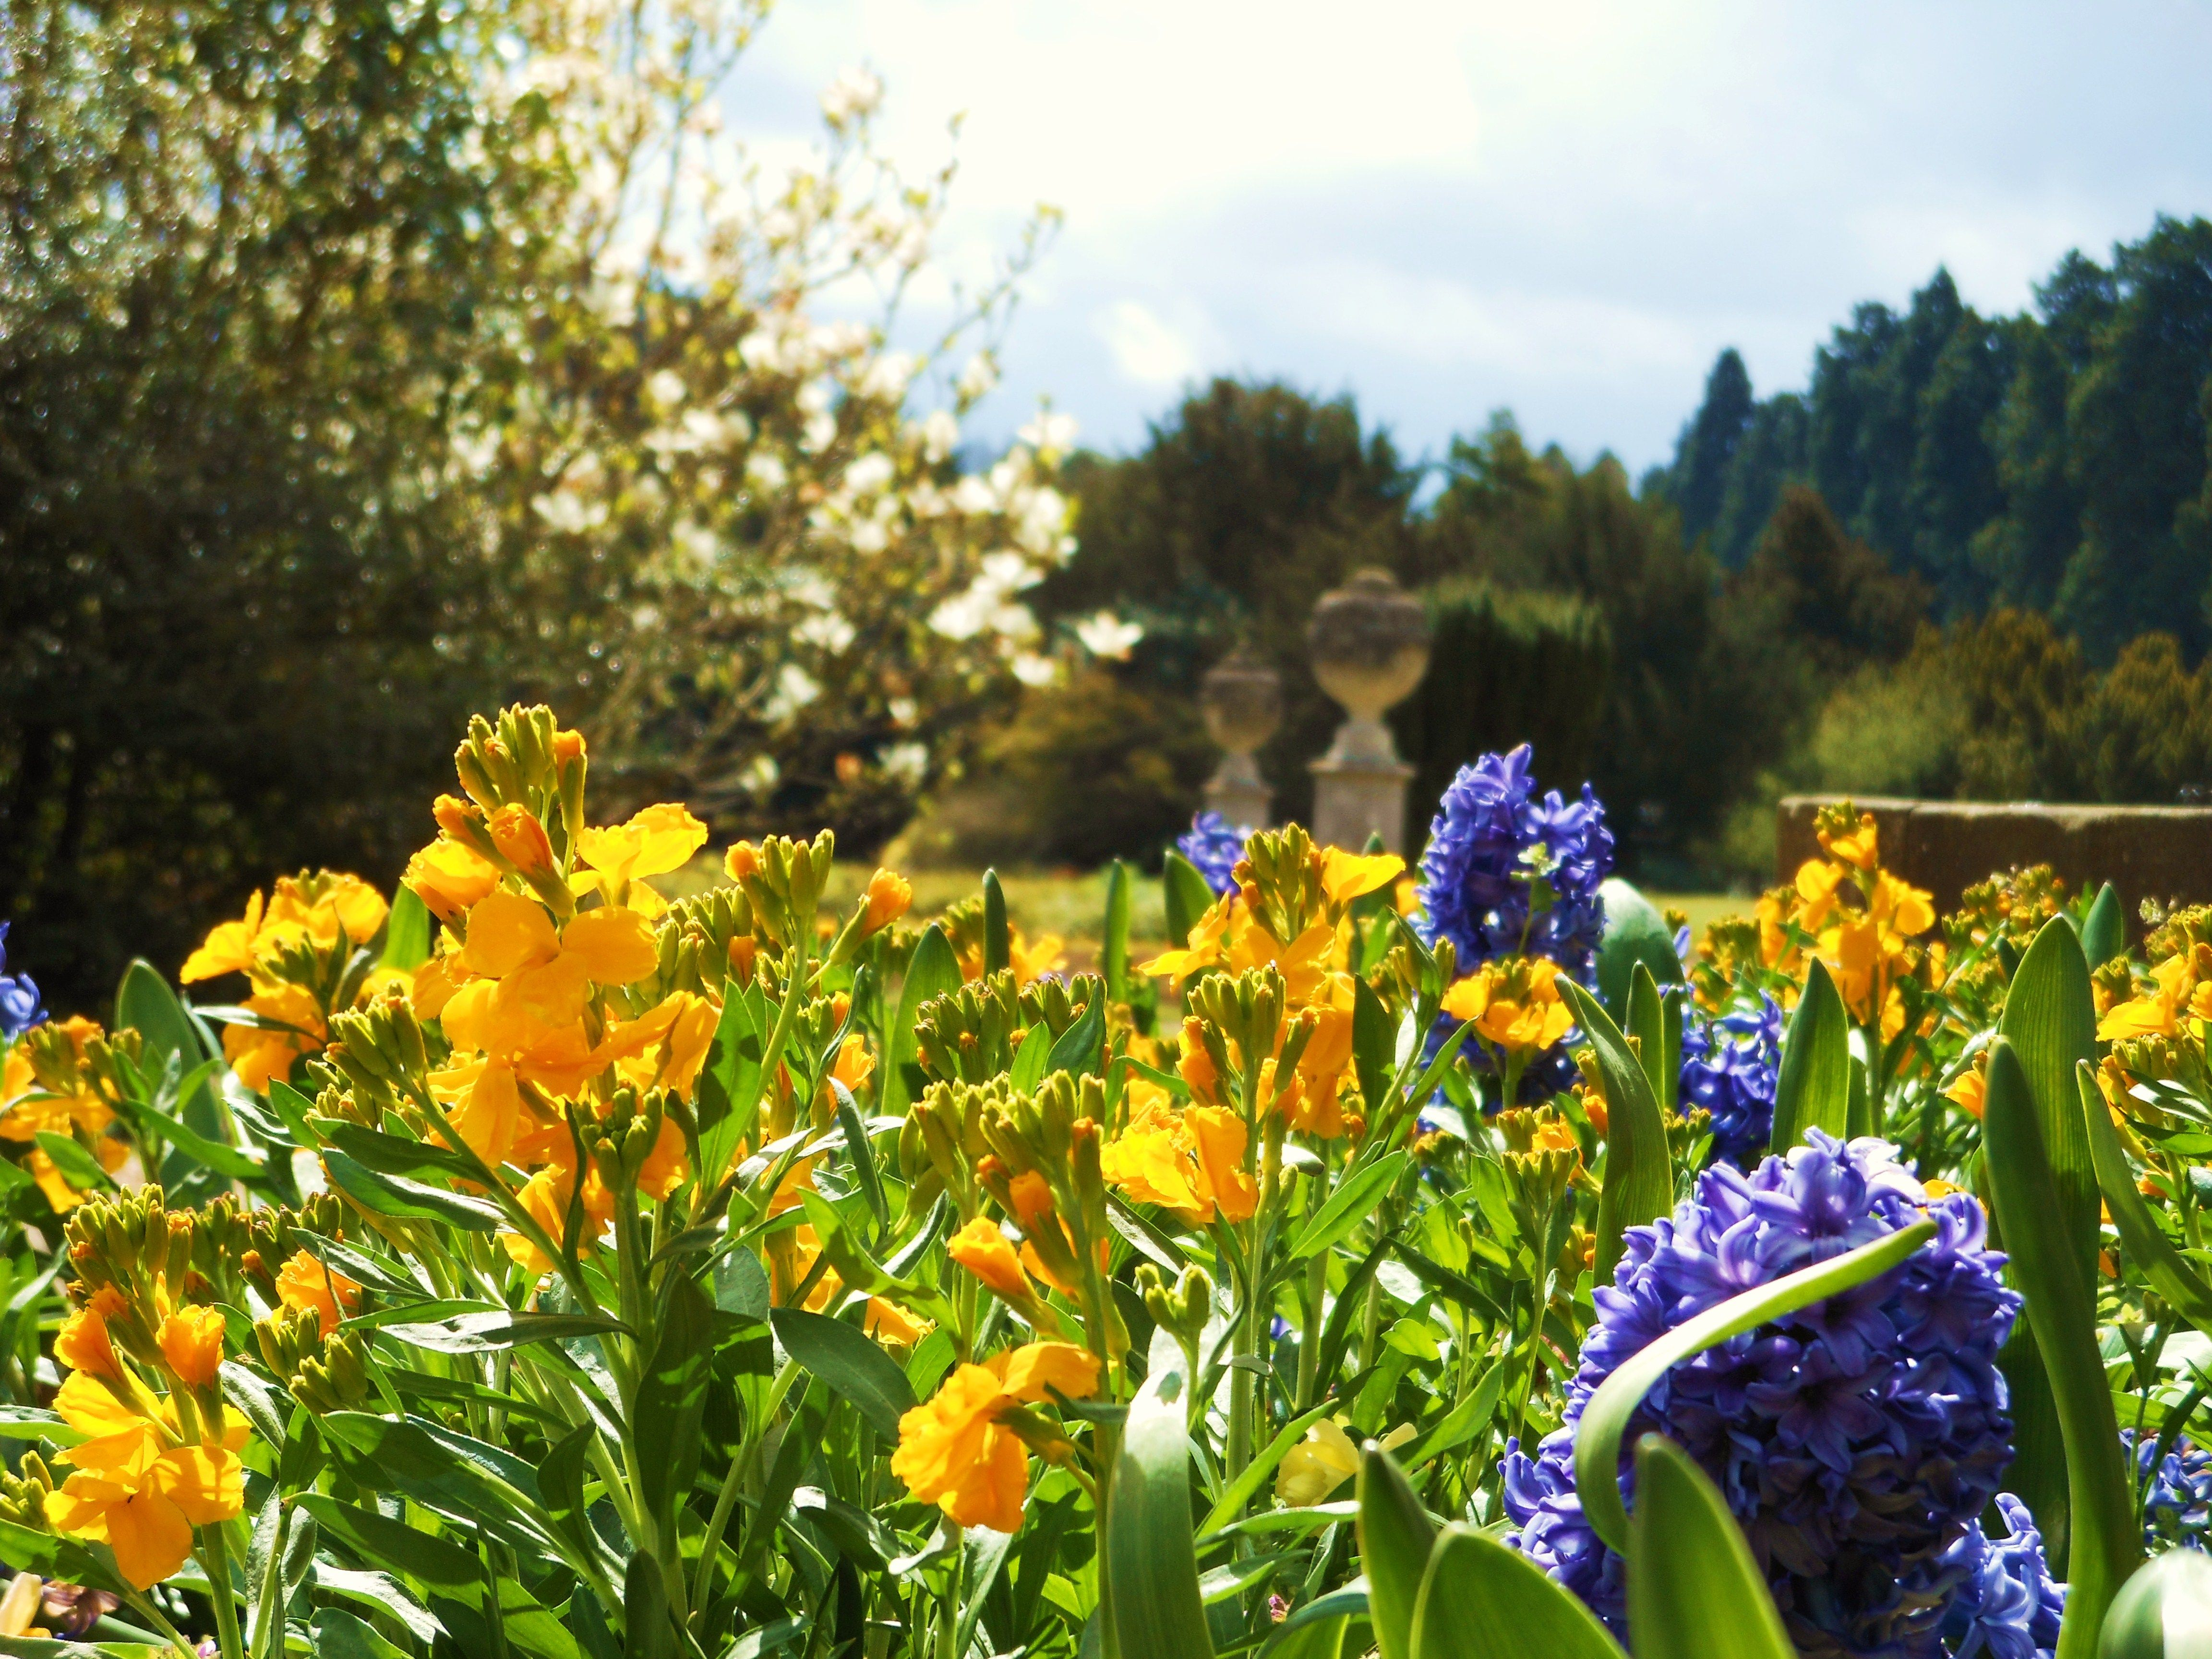 Spring flowers at Ashridge House from the Library